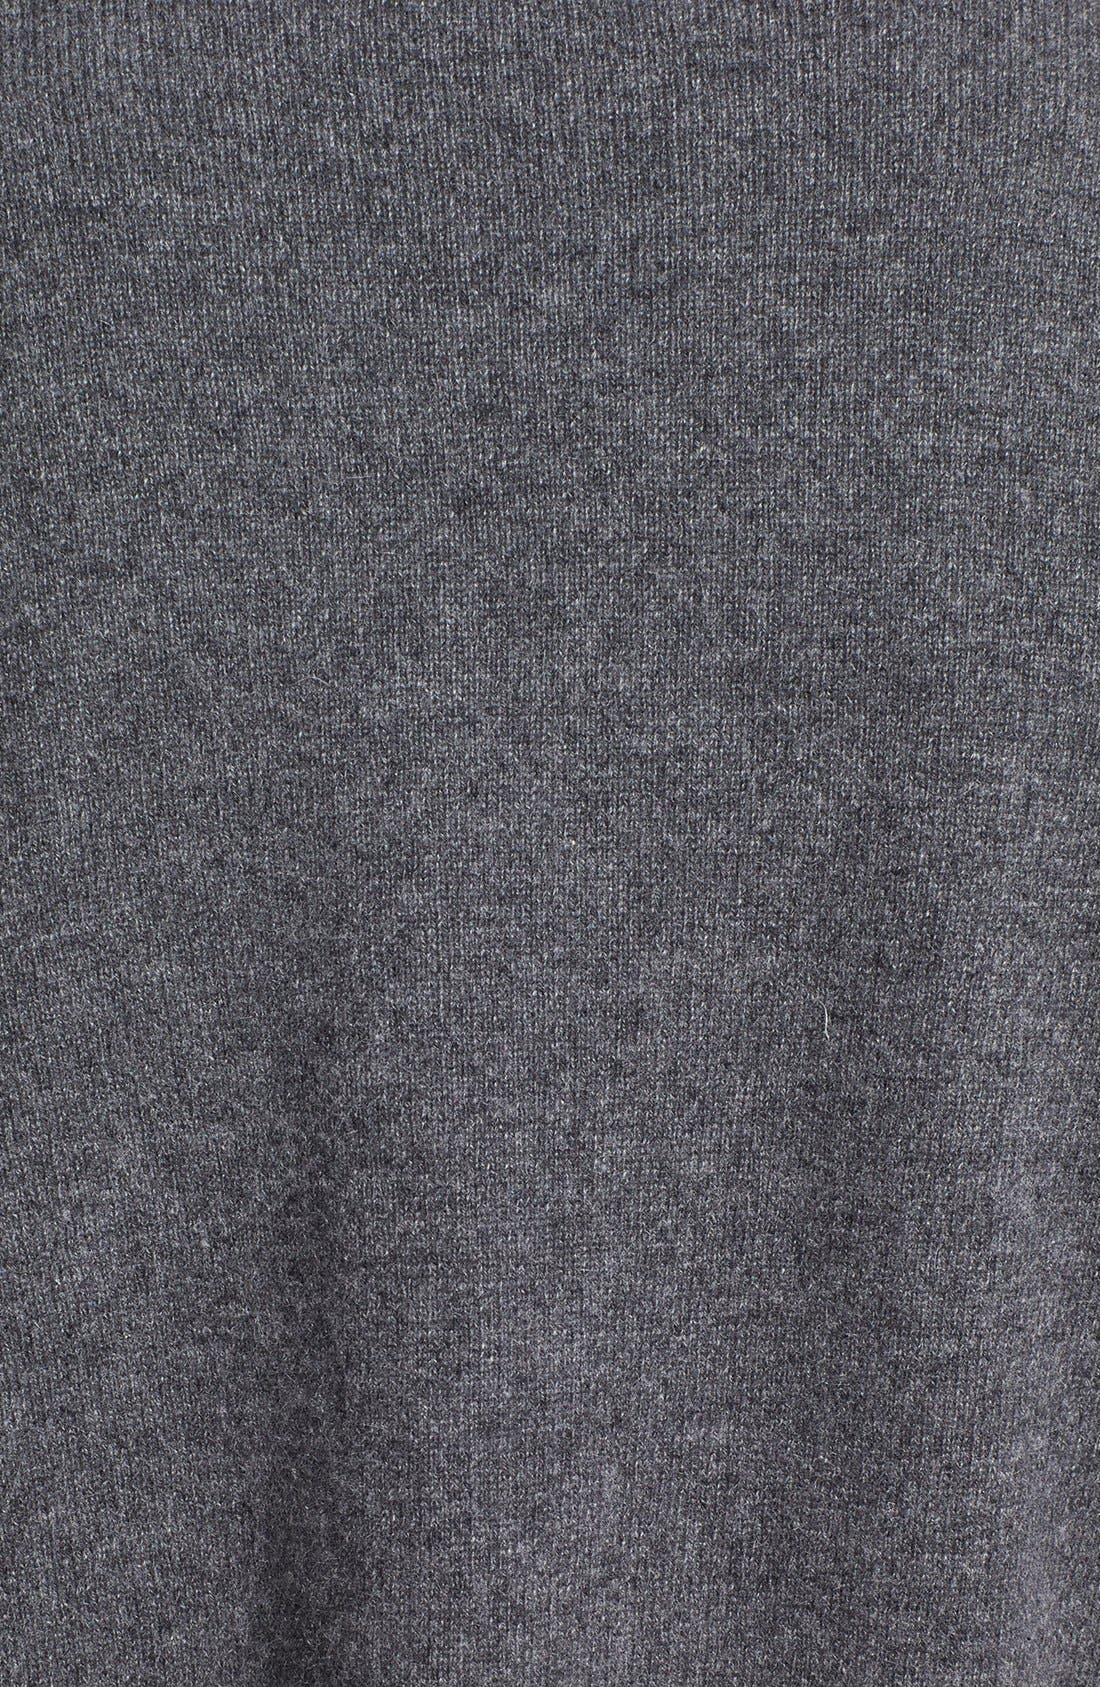 Alternate Image 3  - Halogen® Wool & Cashmere Shrug (Regular & Petite)